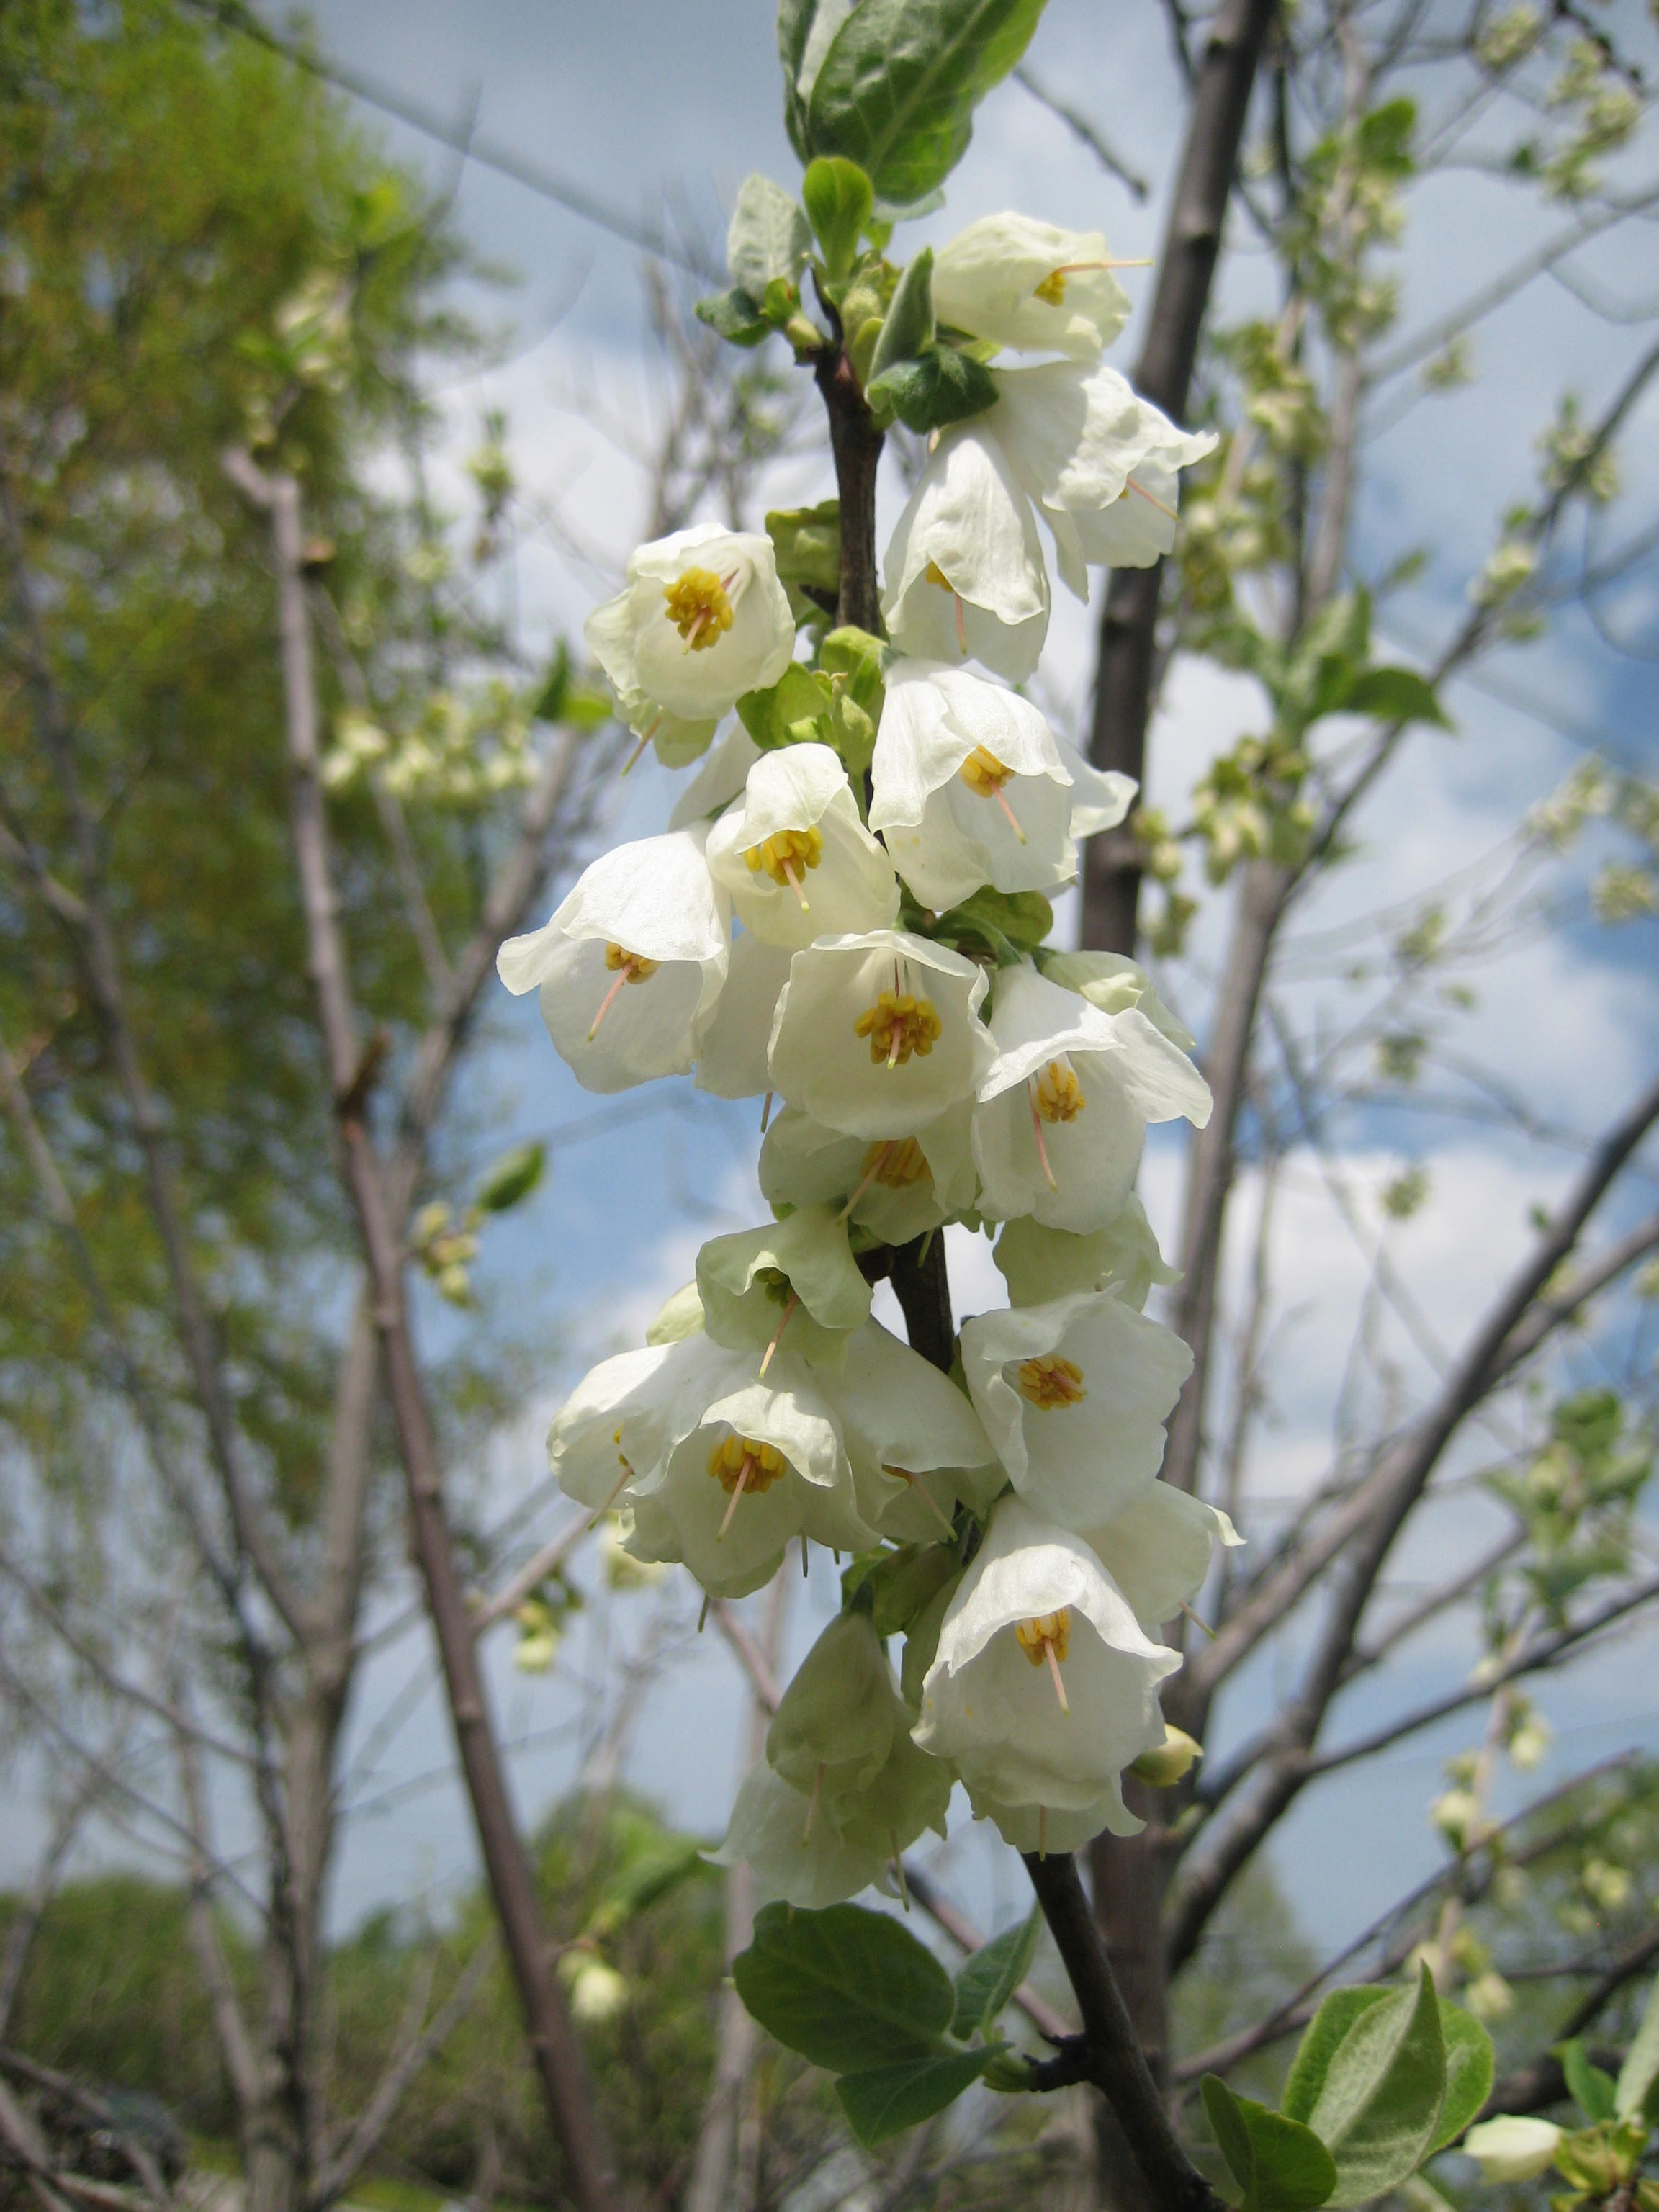 Halesia carolina flwrg show the image in full size mightylinksfo